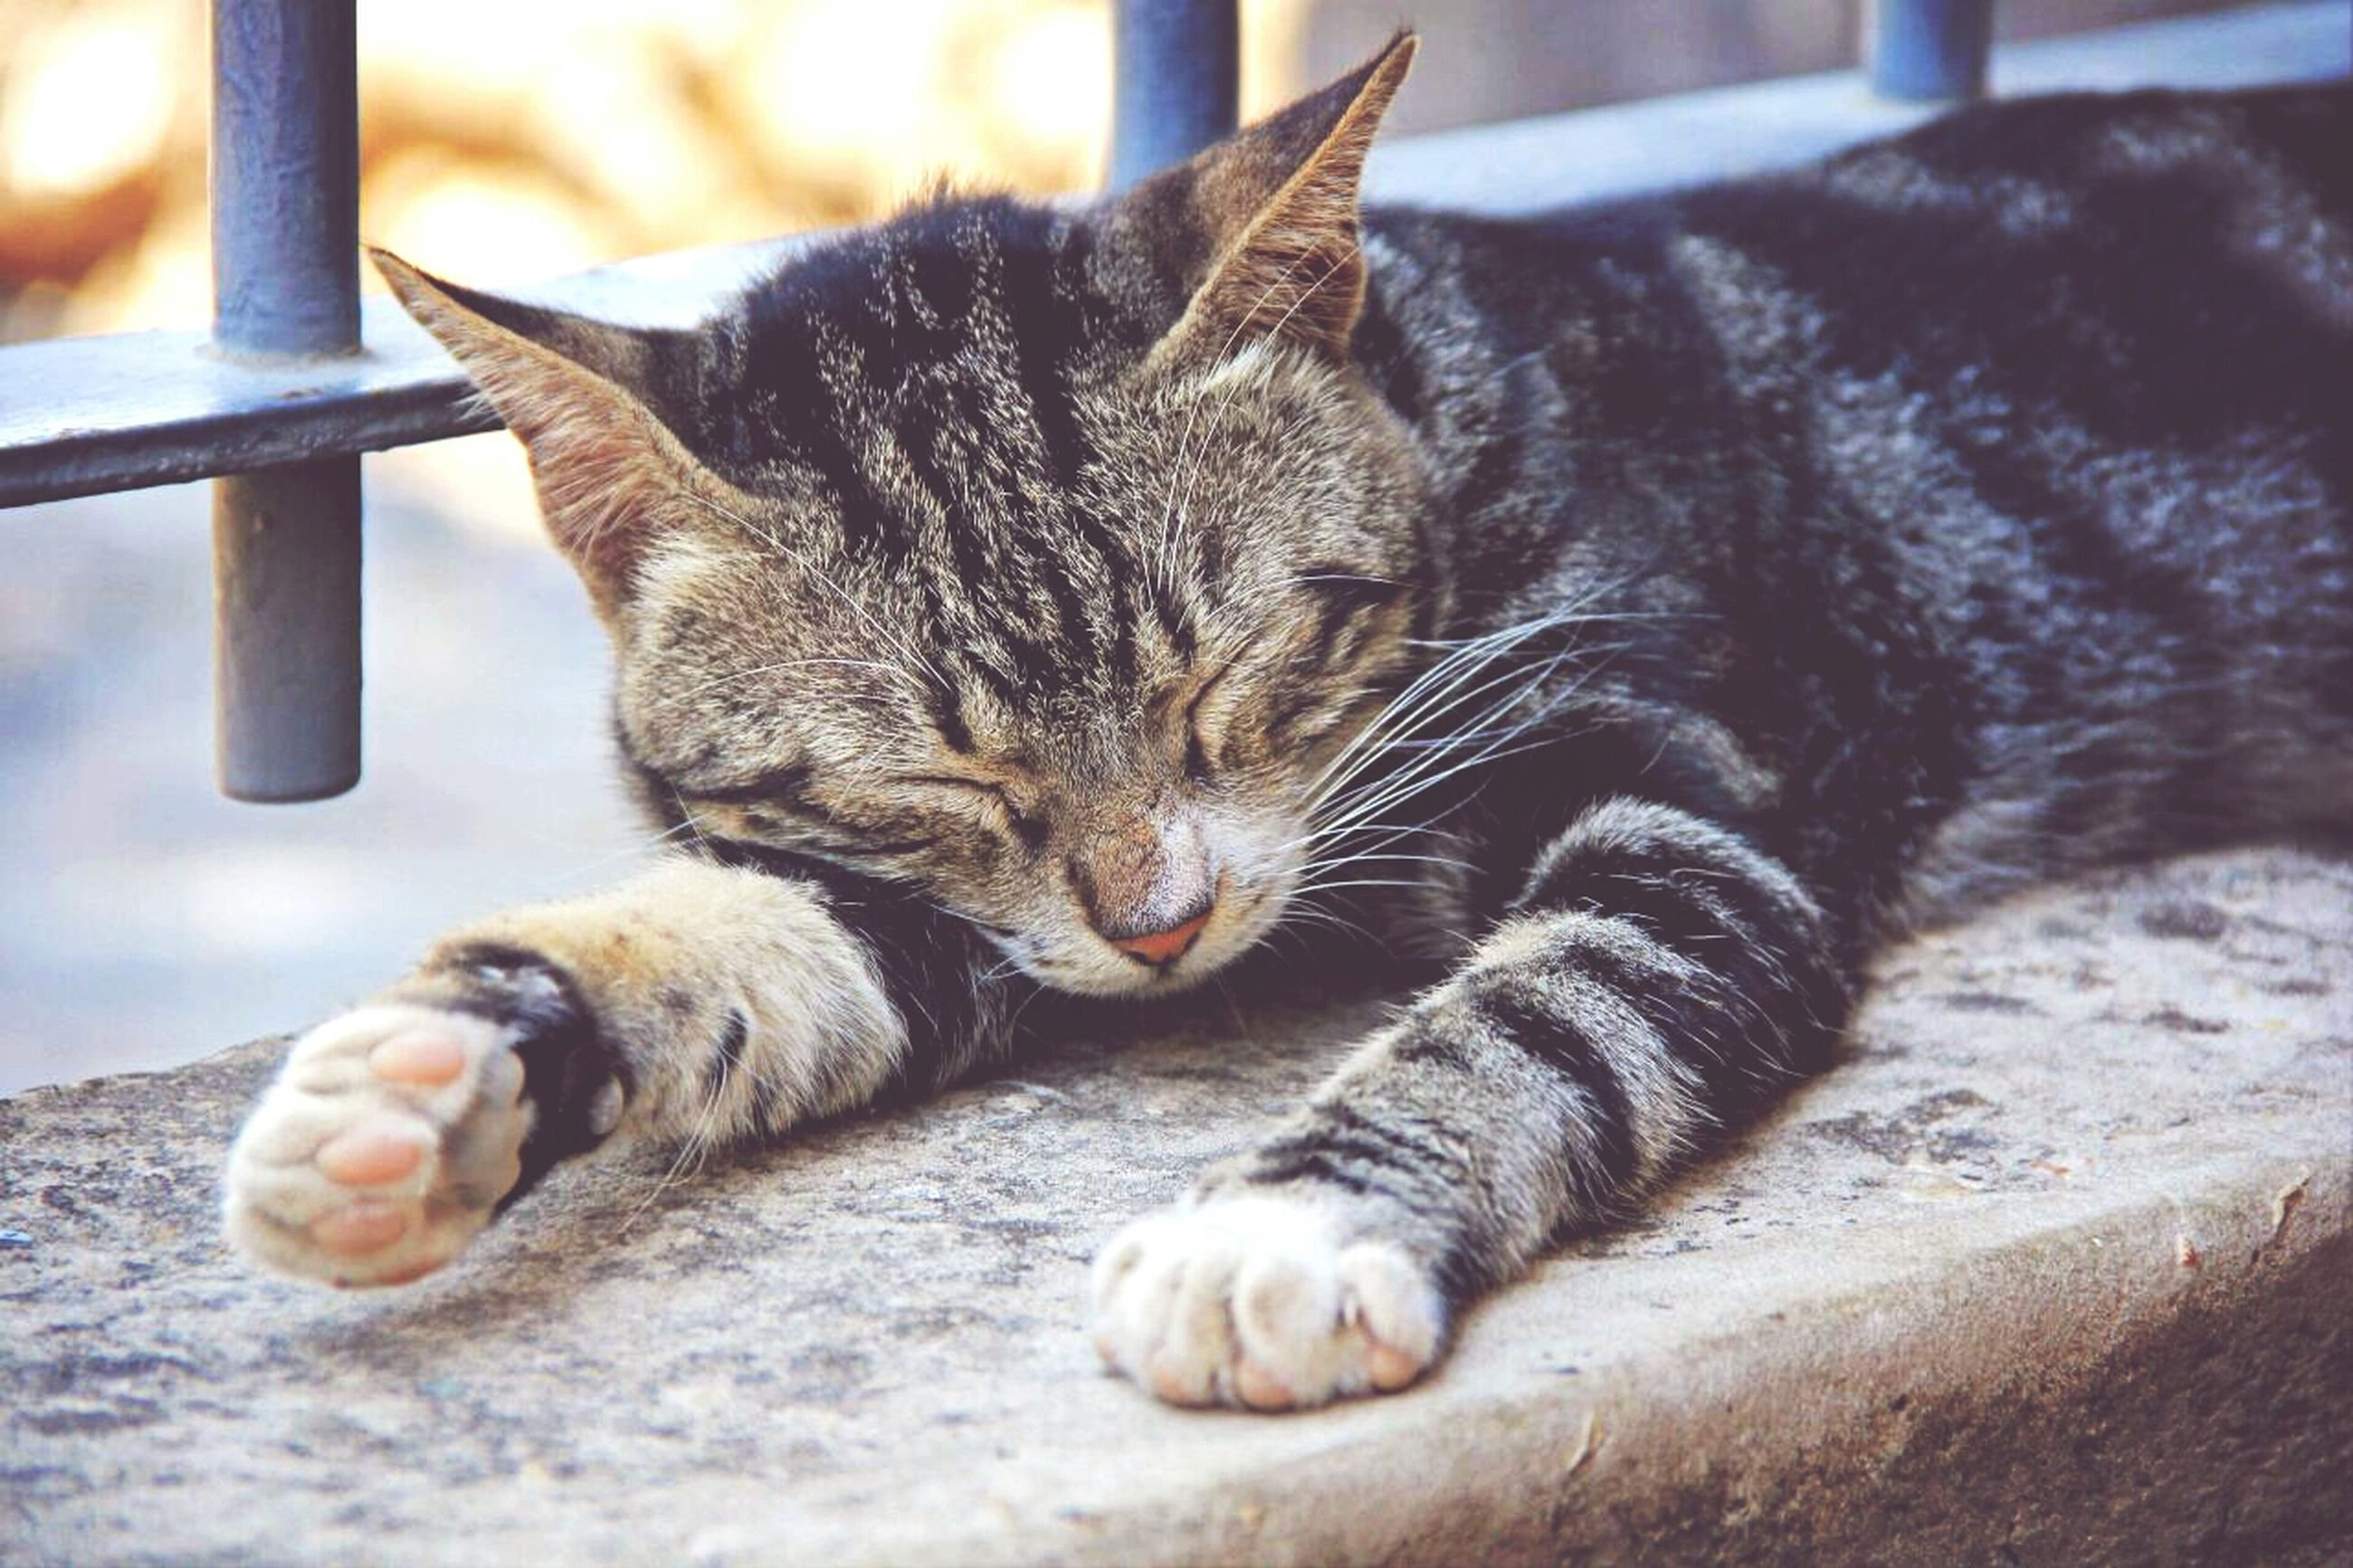 animal themes, domestic cat, one animal, cat, mammal, feline, domestic animals, pets, whisker, relaxation, resting, lying down, indoors, close-up, sleeping, tabby, focus on foreground, eyes closed, zoology, relaxing